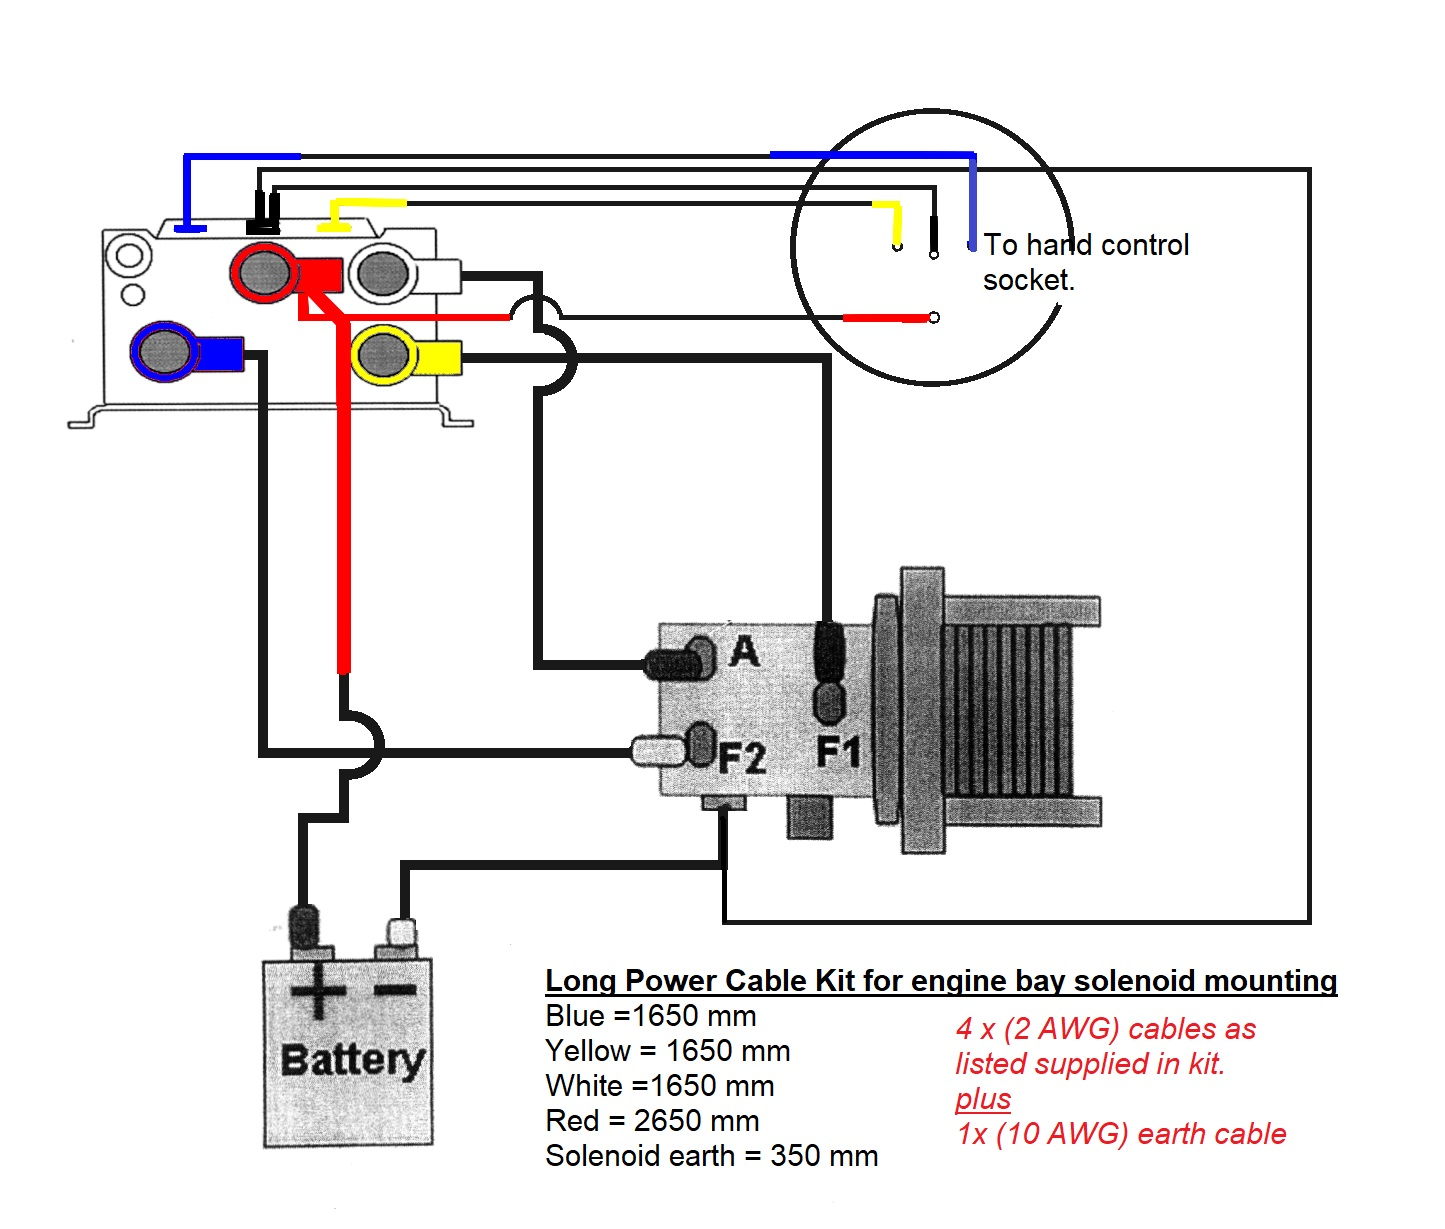 boat trailer winch wiring diagram shoreland r boat trailer lights wiring diagram winch wiring kit